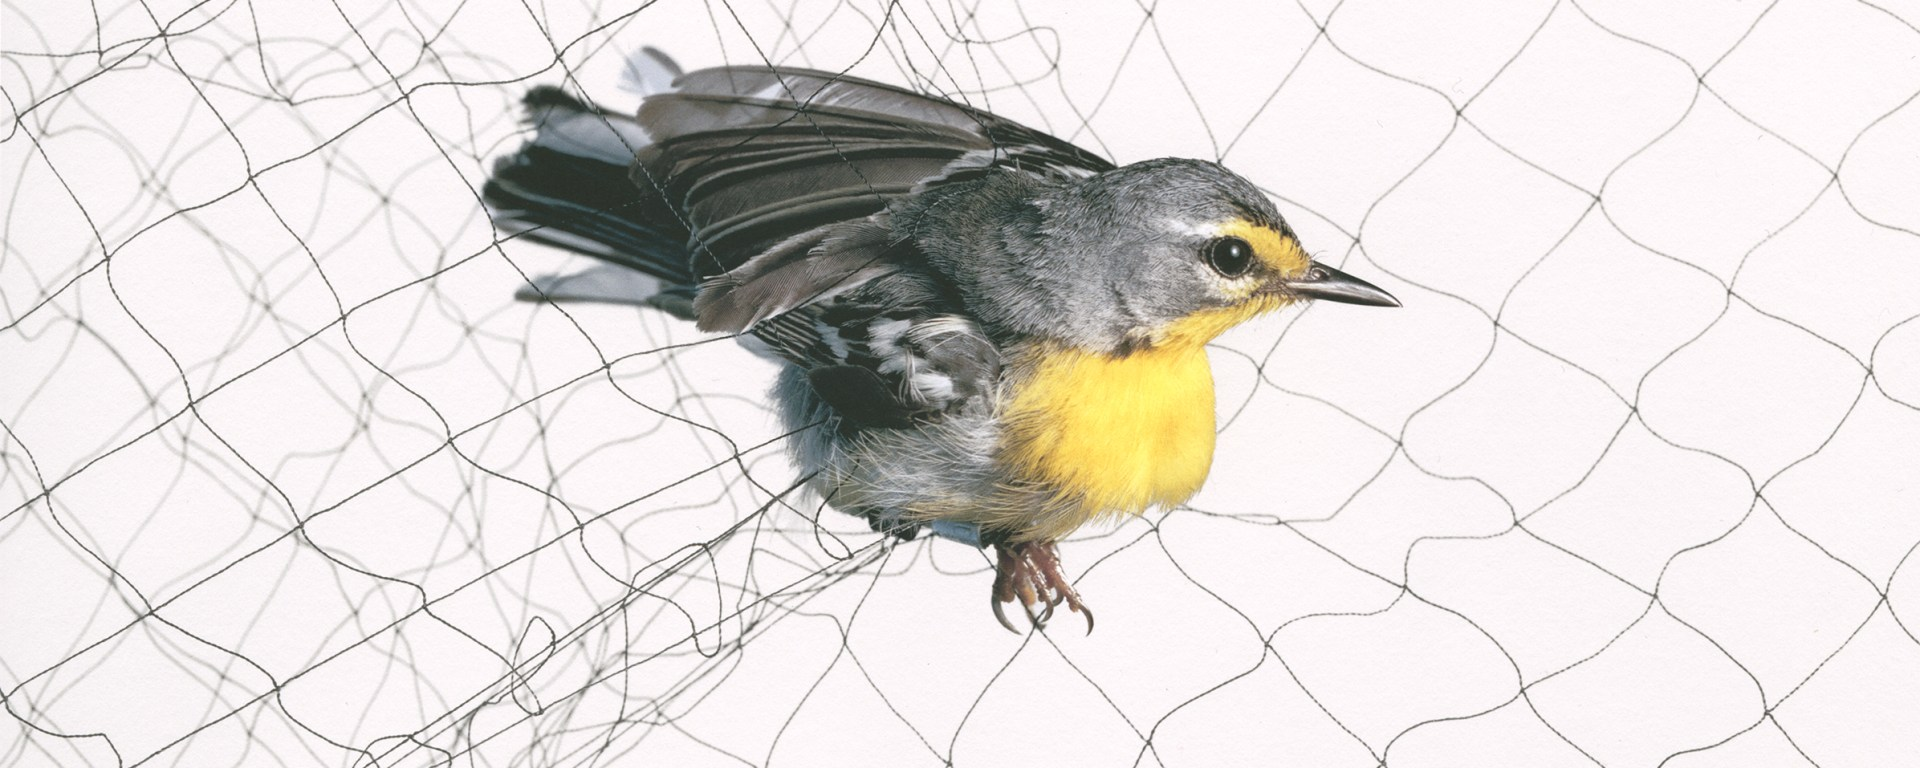 Todd Forsgren, Adelaide's Warbler (Setophaga adelaidae), 2009, from the series Ornithological, Accession no. 2016-07-001